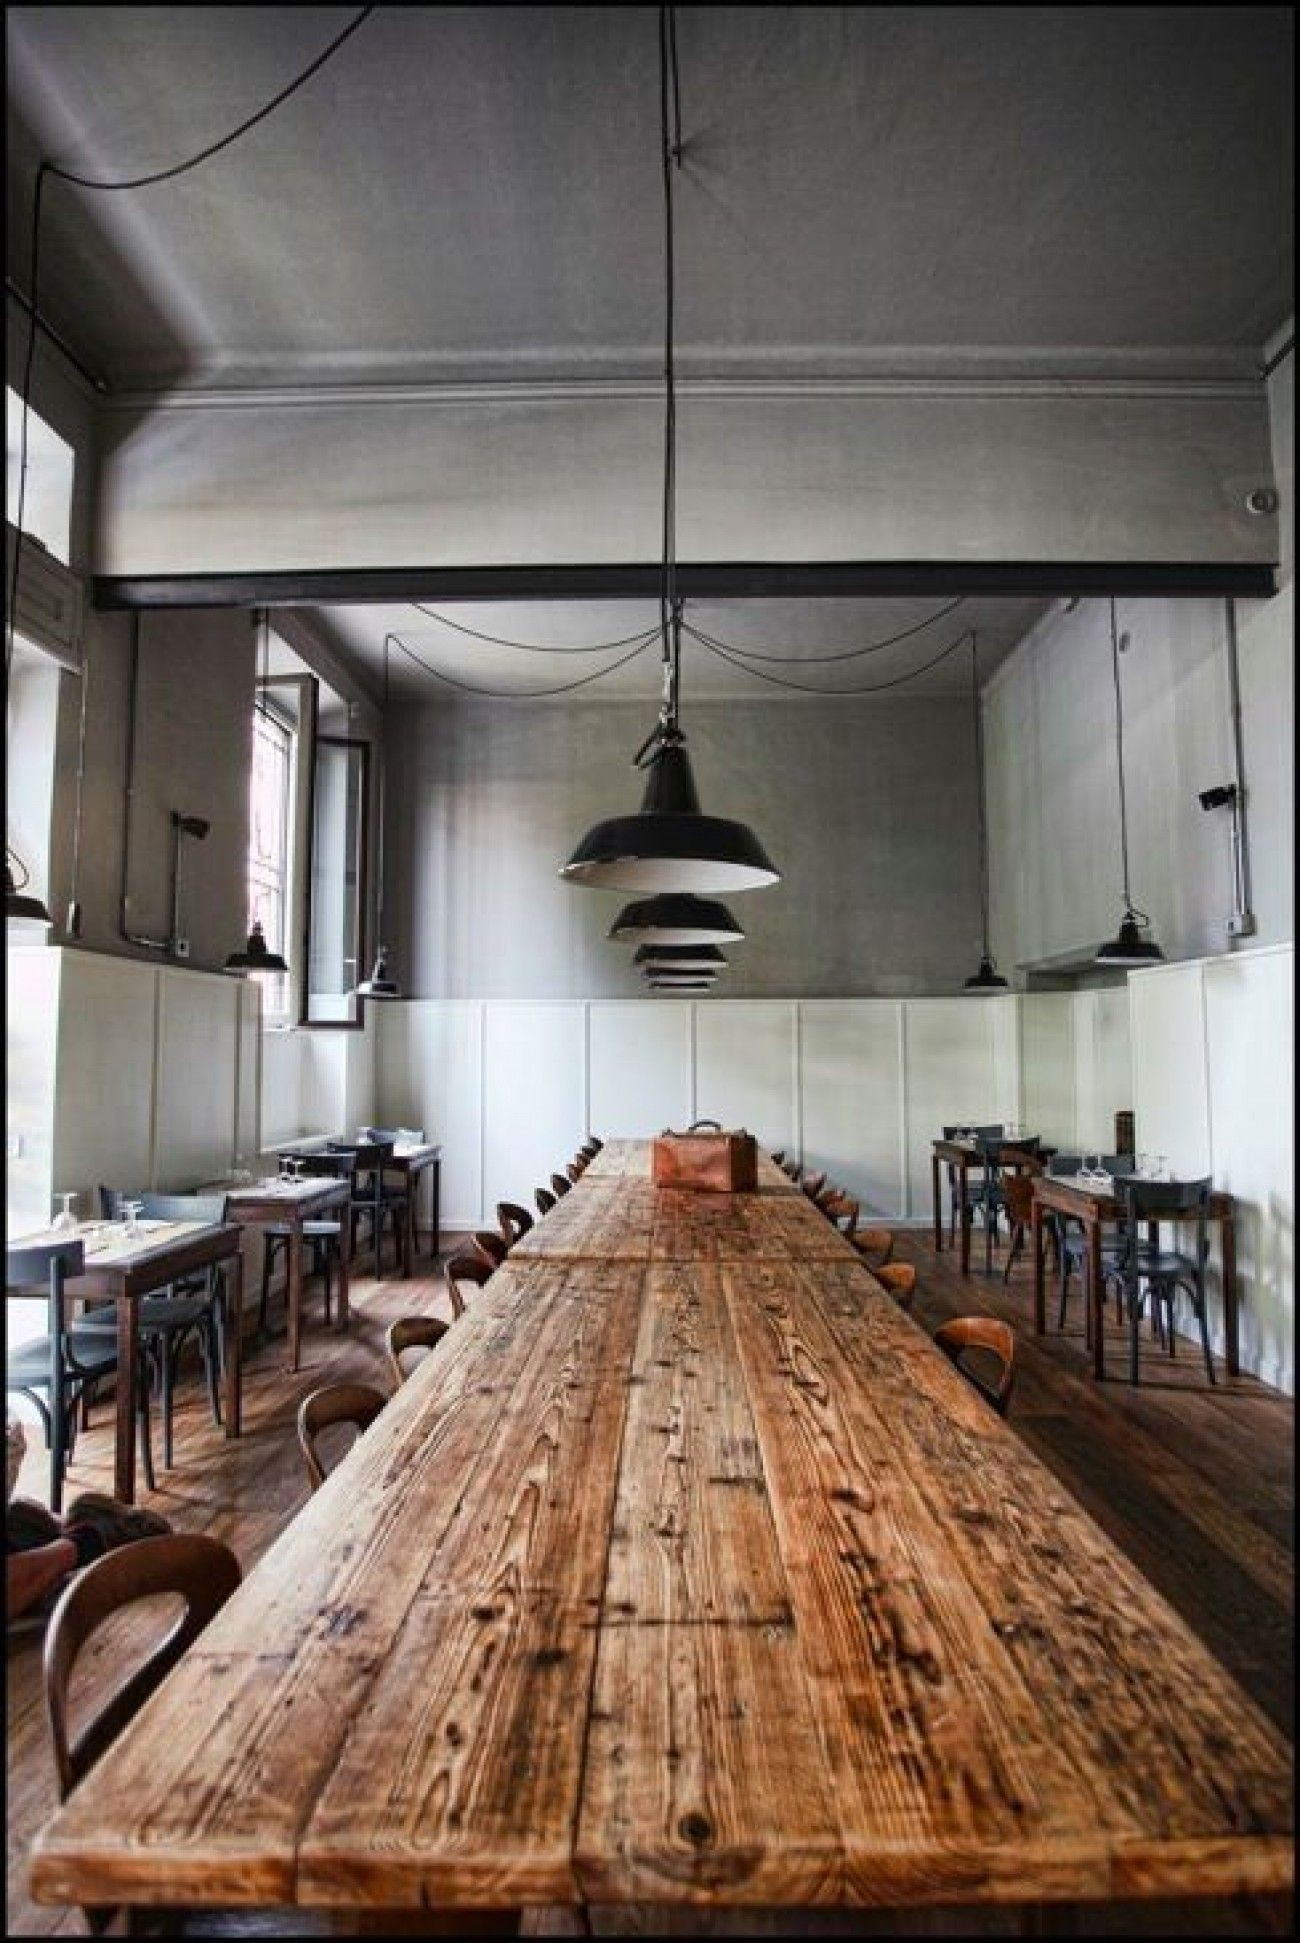 Ordinaire Rustic Wood And Metal Dining Table 4